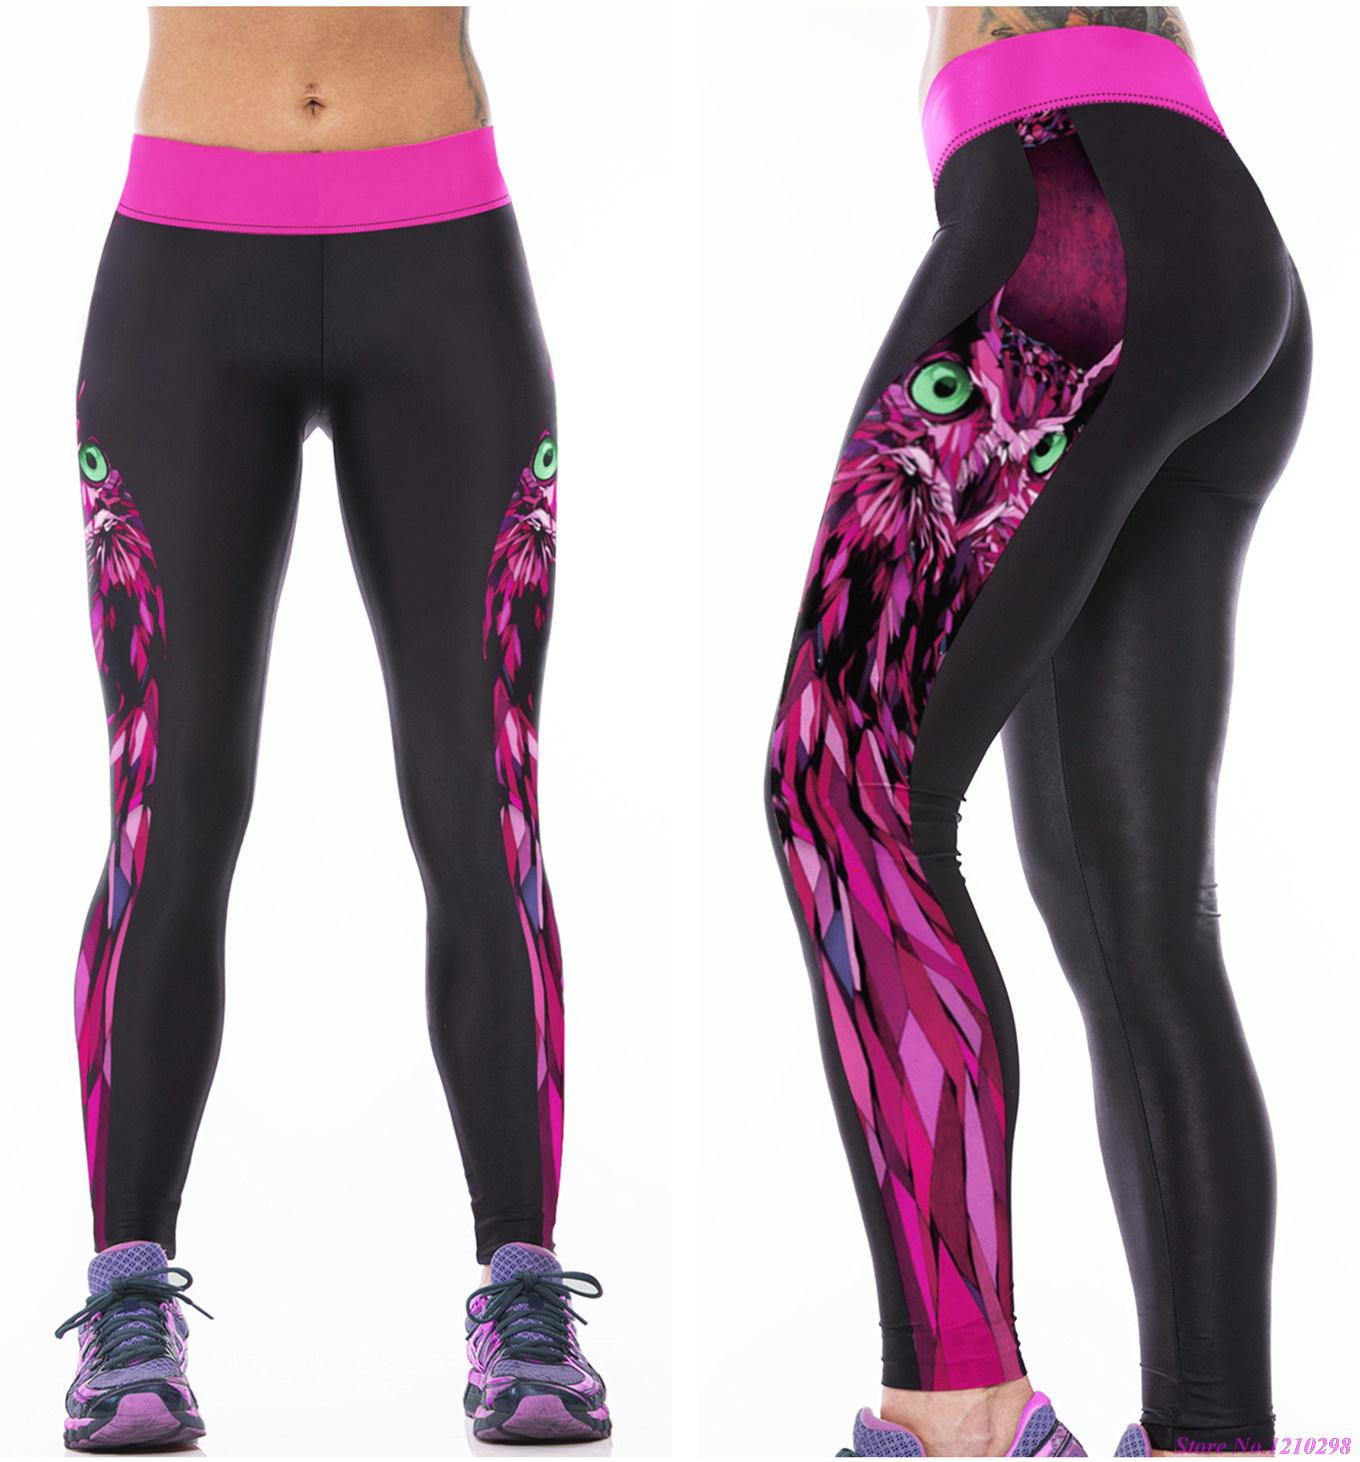 3D Peach Owl Bodybuilding Sports Pants Women Gym Trousers -1053